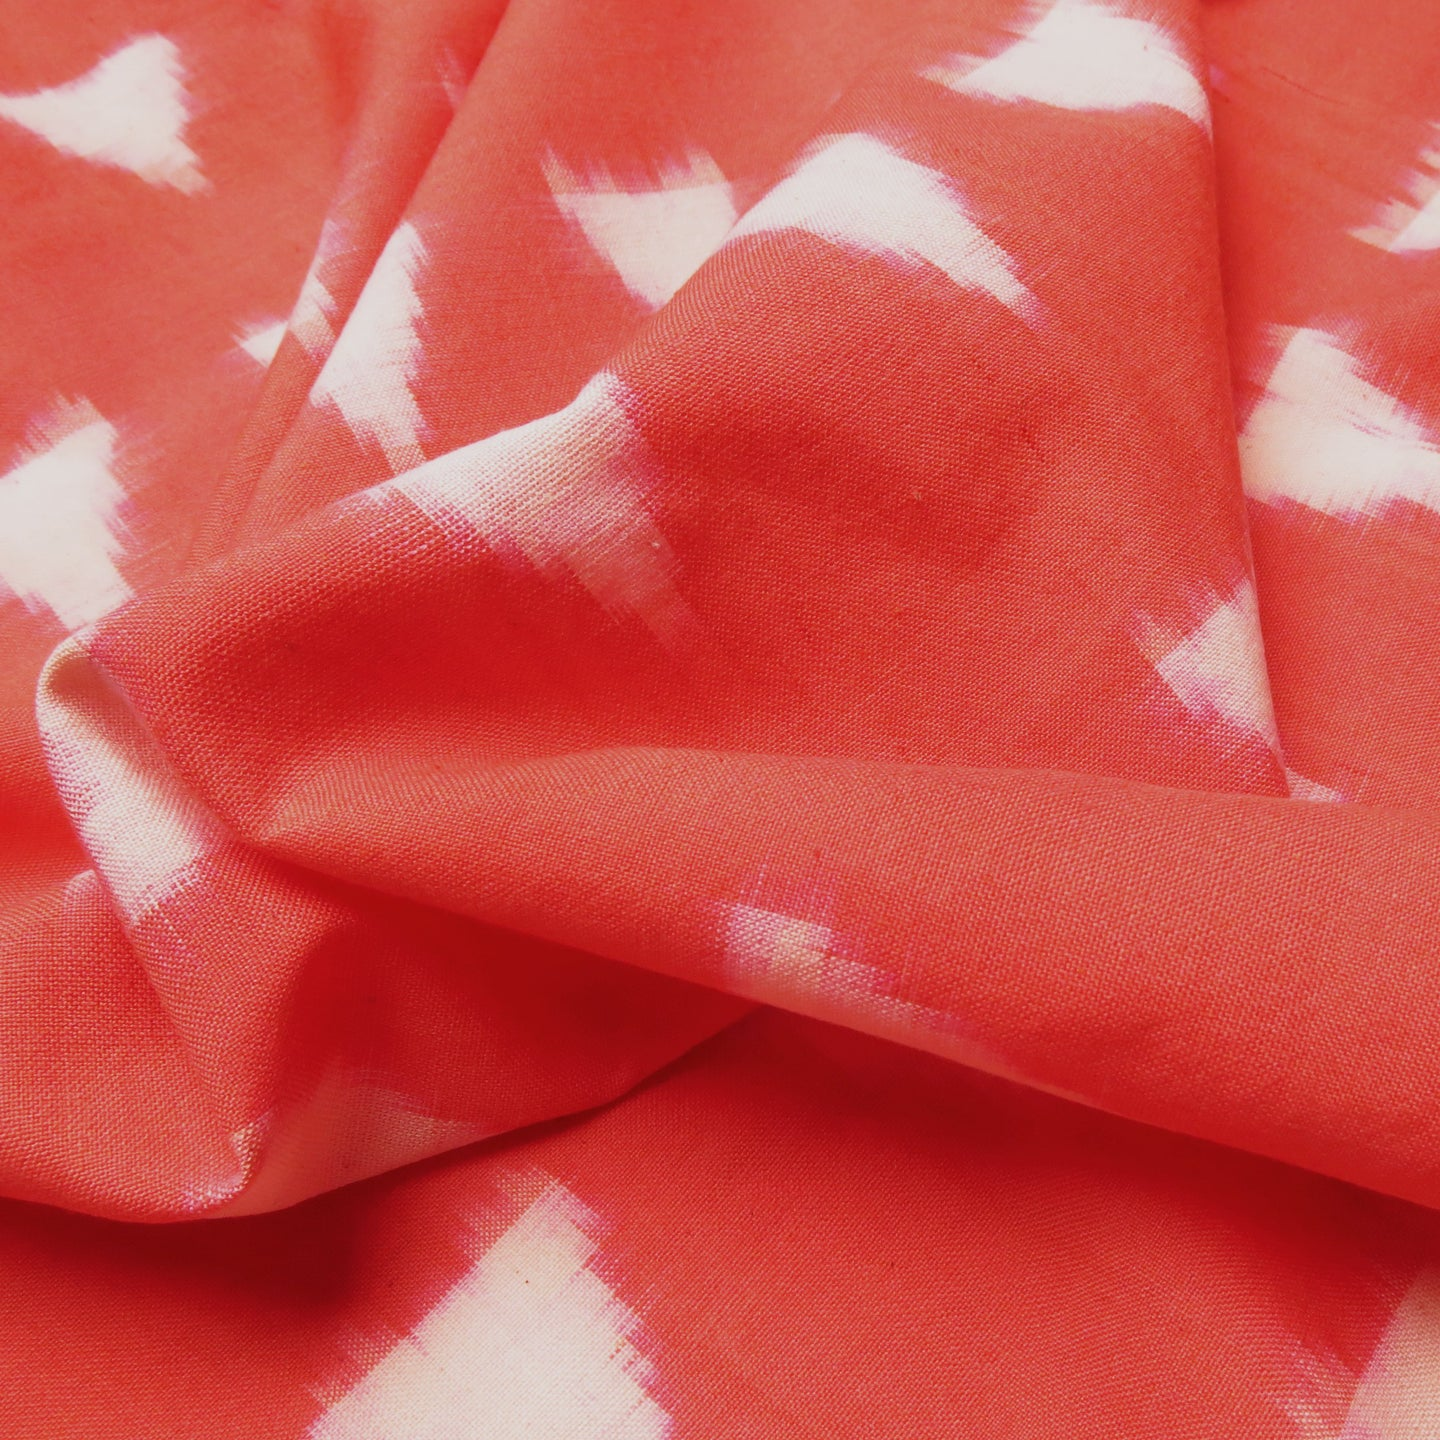 Cotton Ikat - Coral with ivory triangles 0.5m